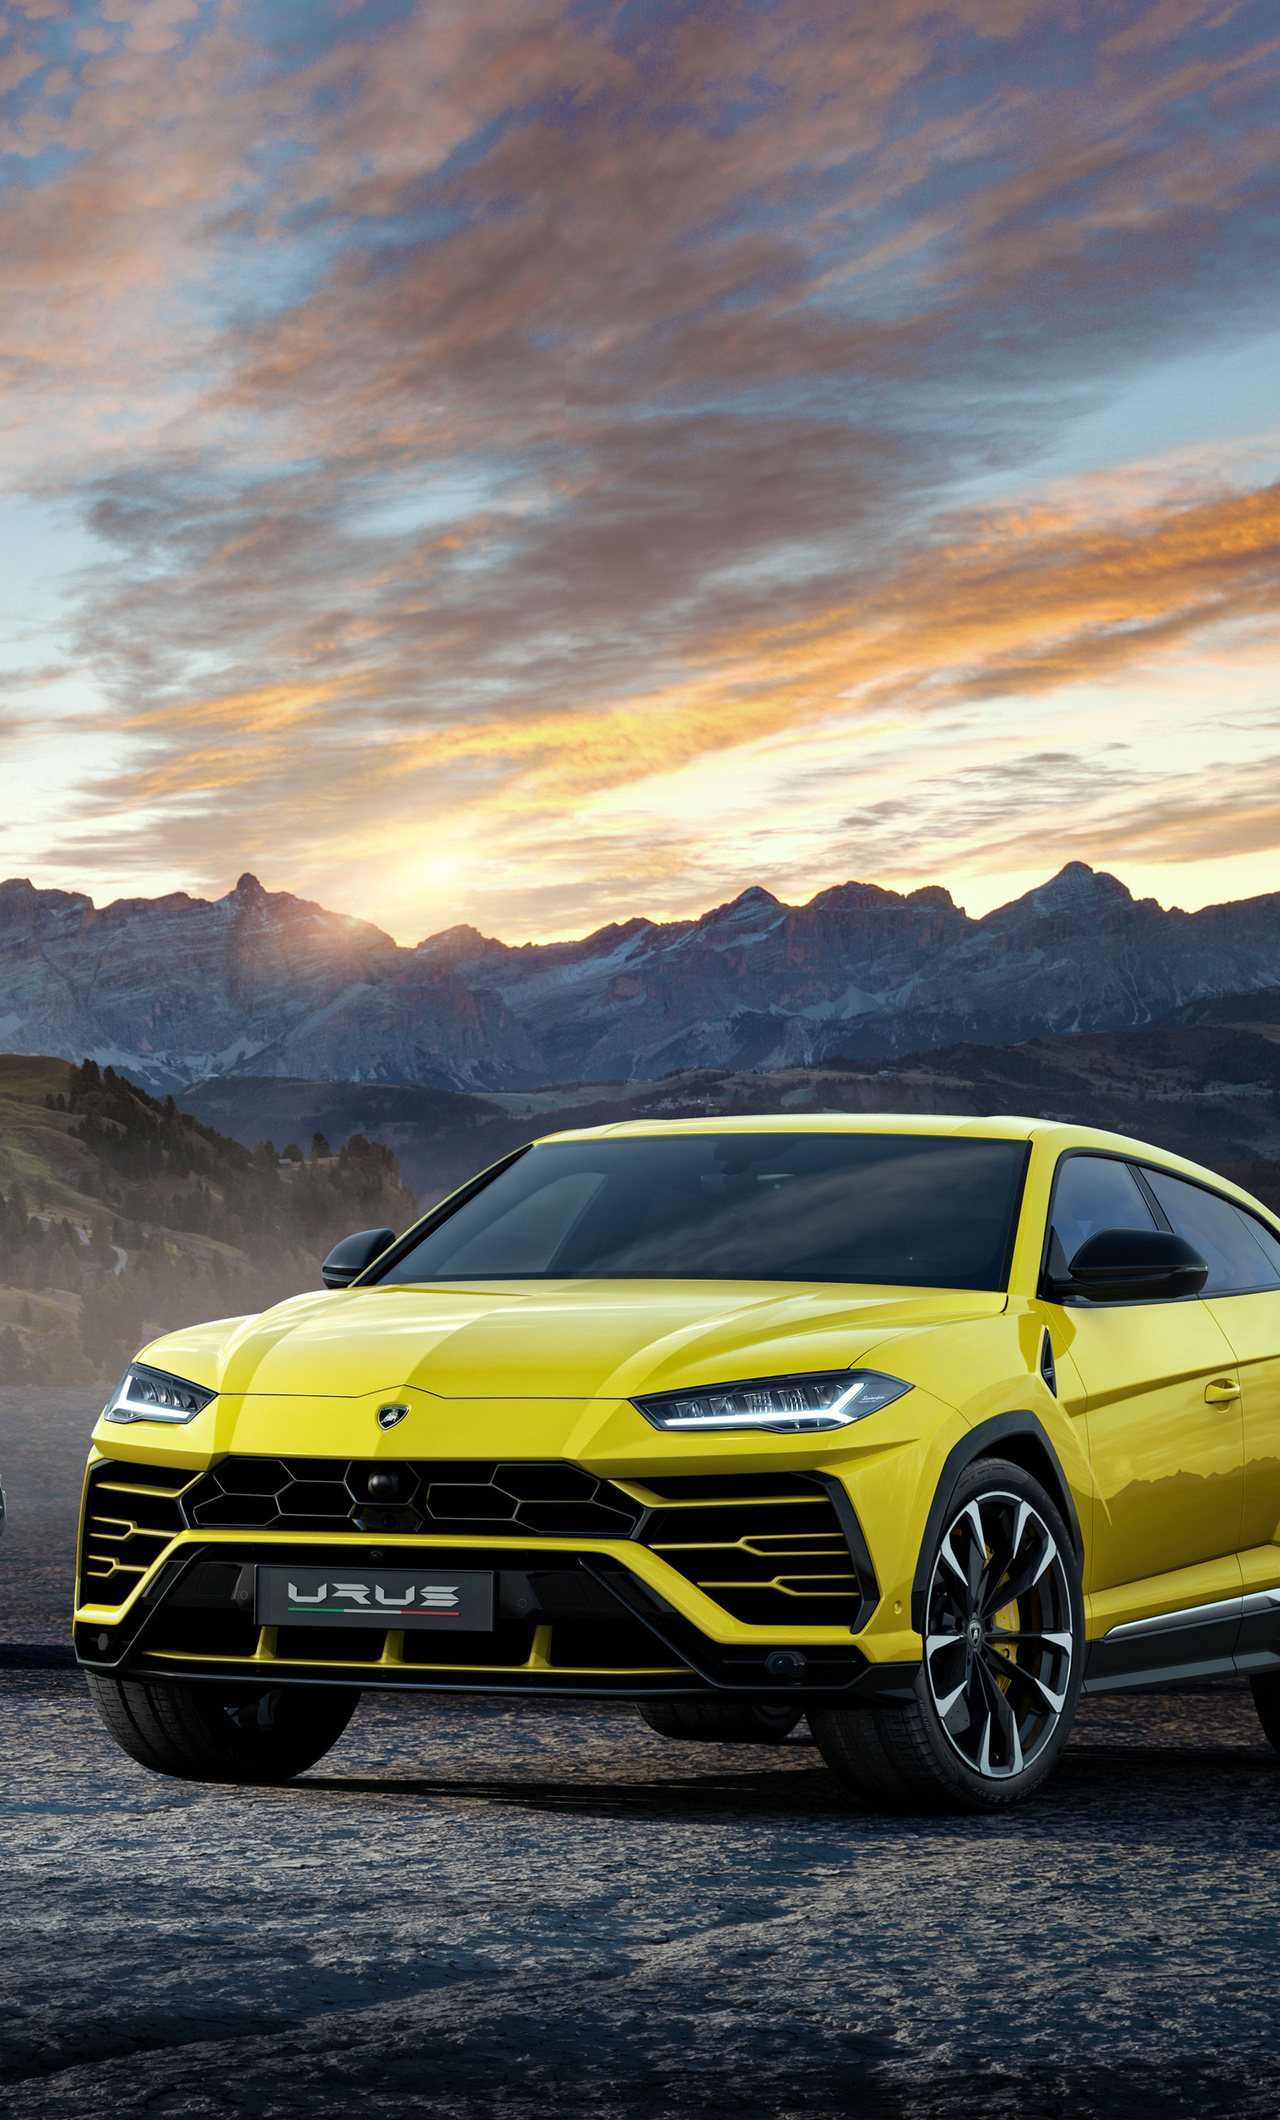 1280x2120 Lamborghini Urus Black And Yellow 4k Iphone 6 Hd 4k